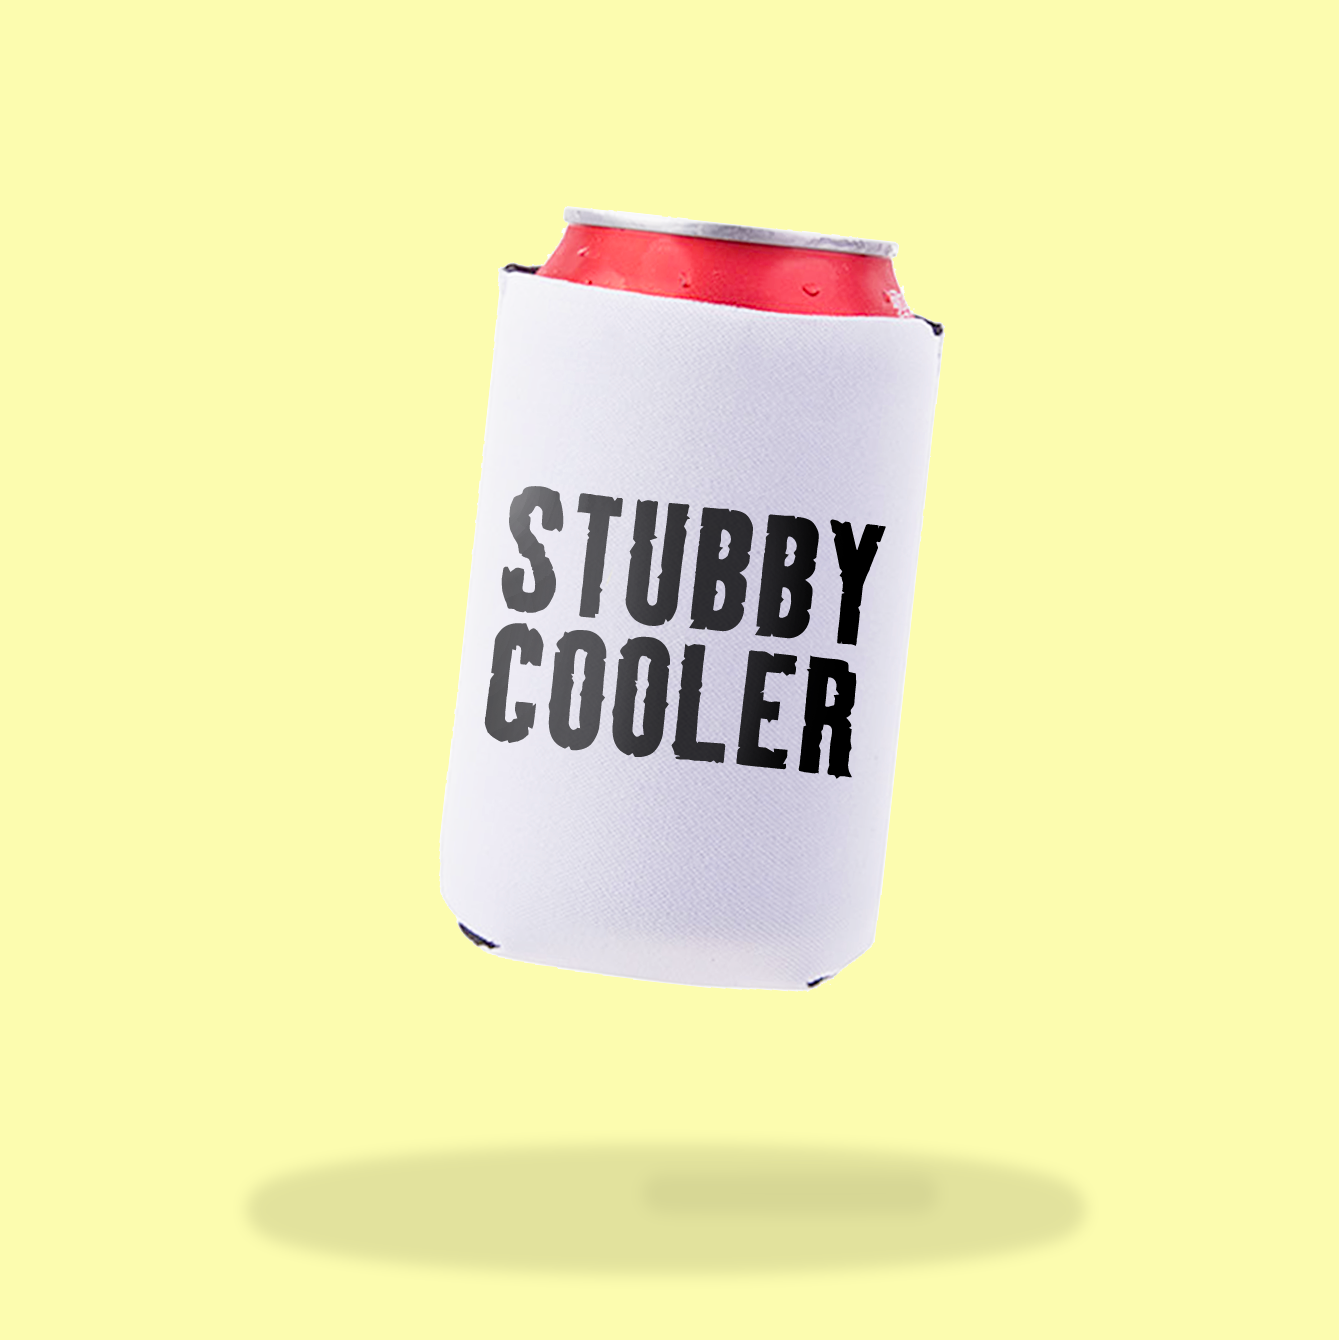 https://www.goldcoastprinting.com.au/images/products_gallery_images/Stubby-Cooler80.png